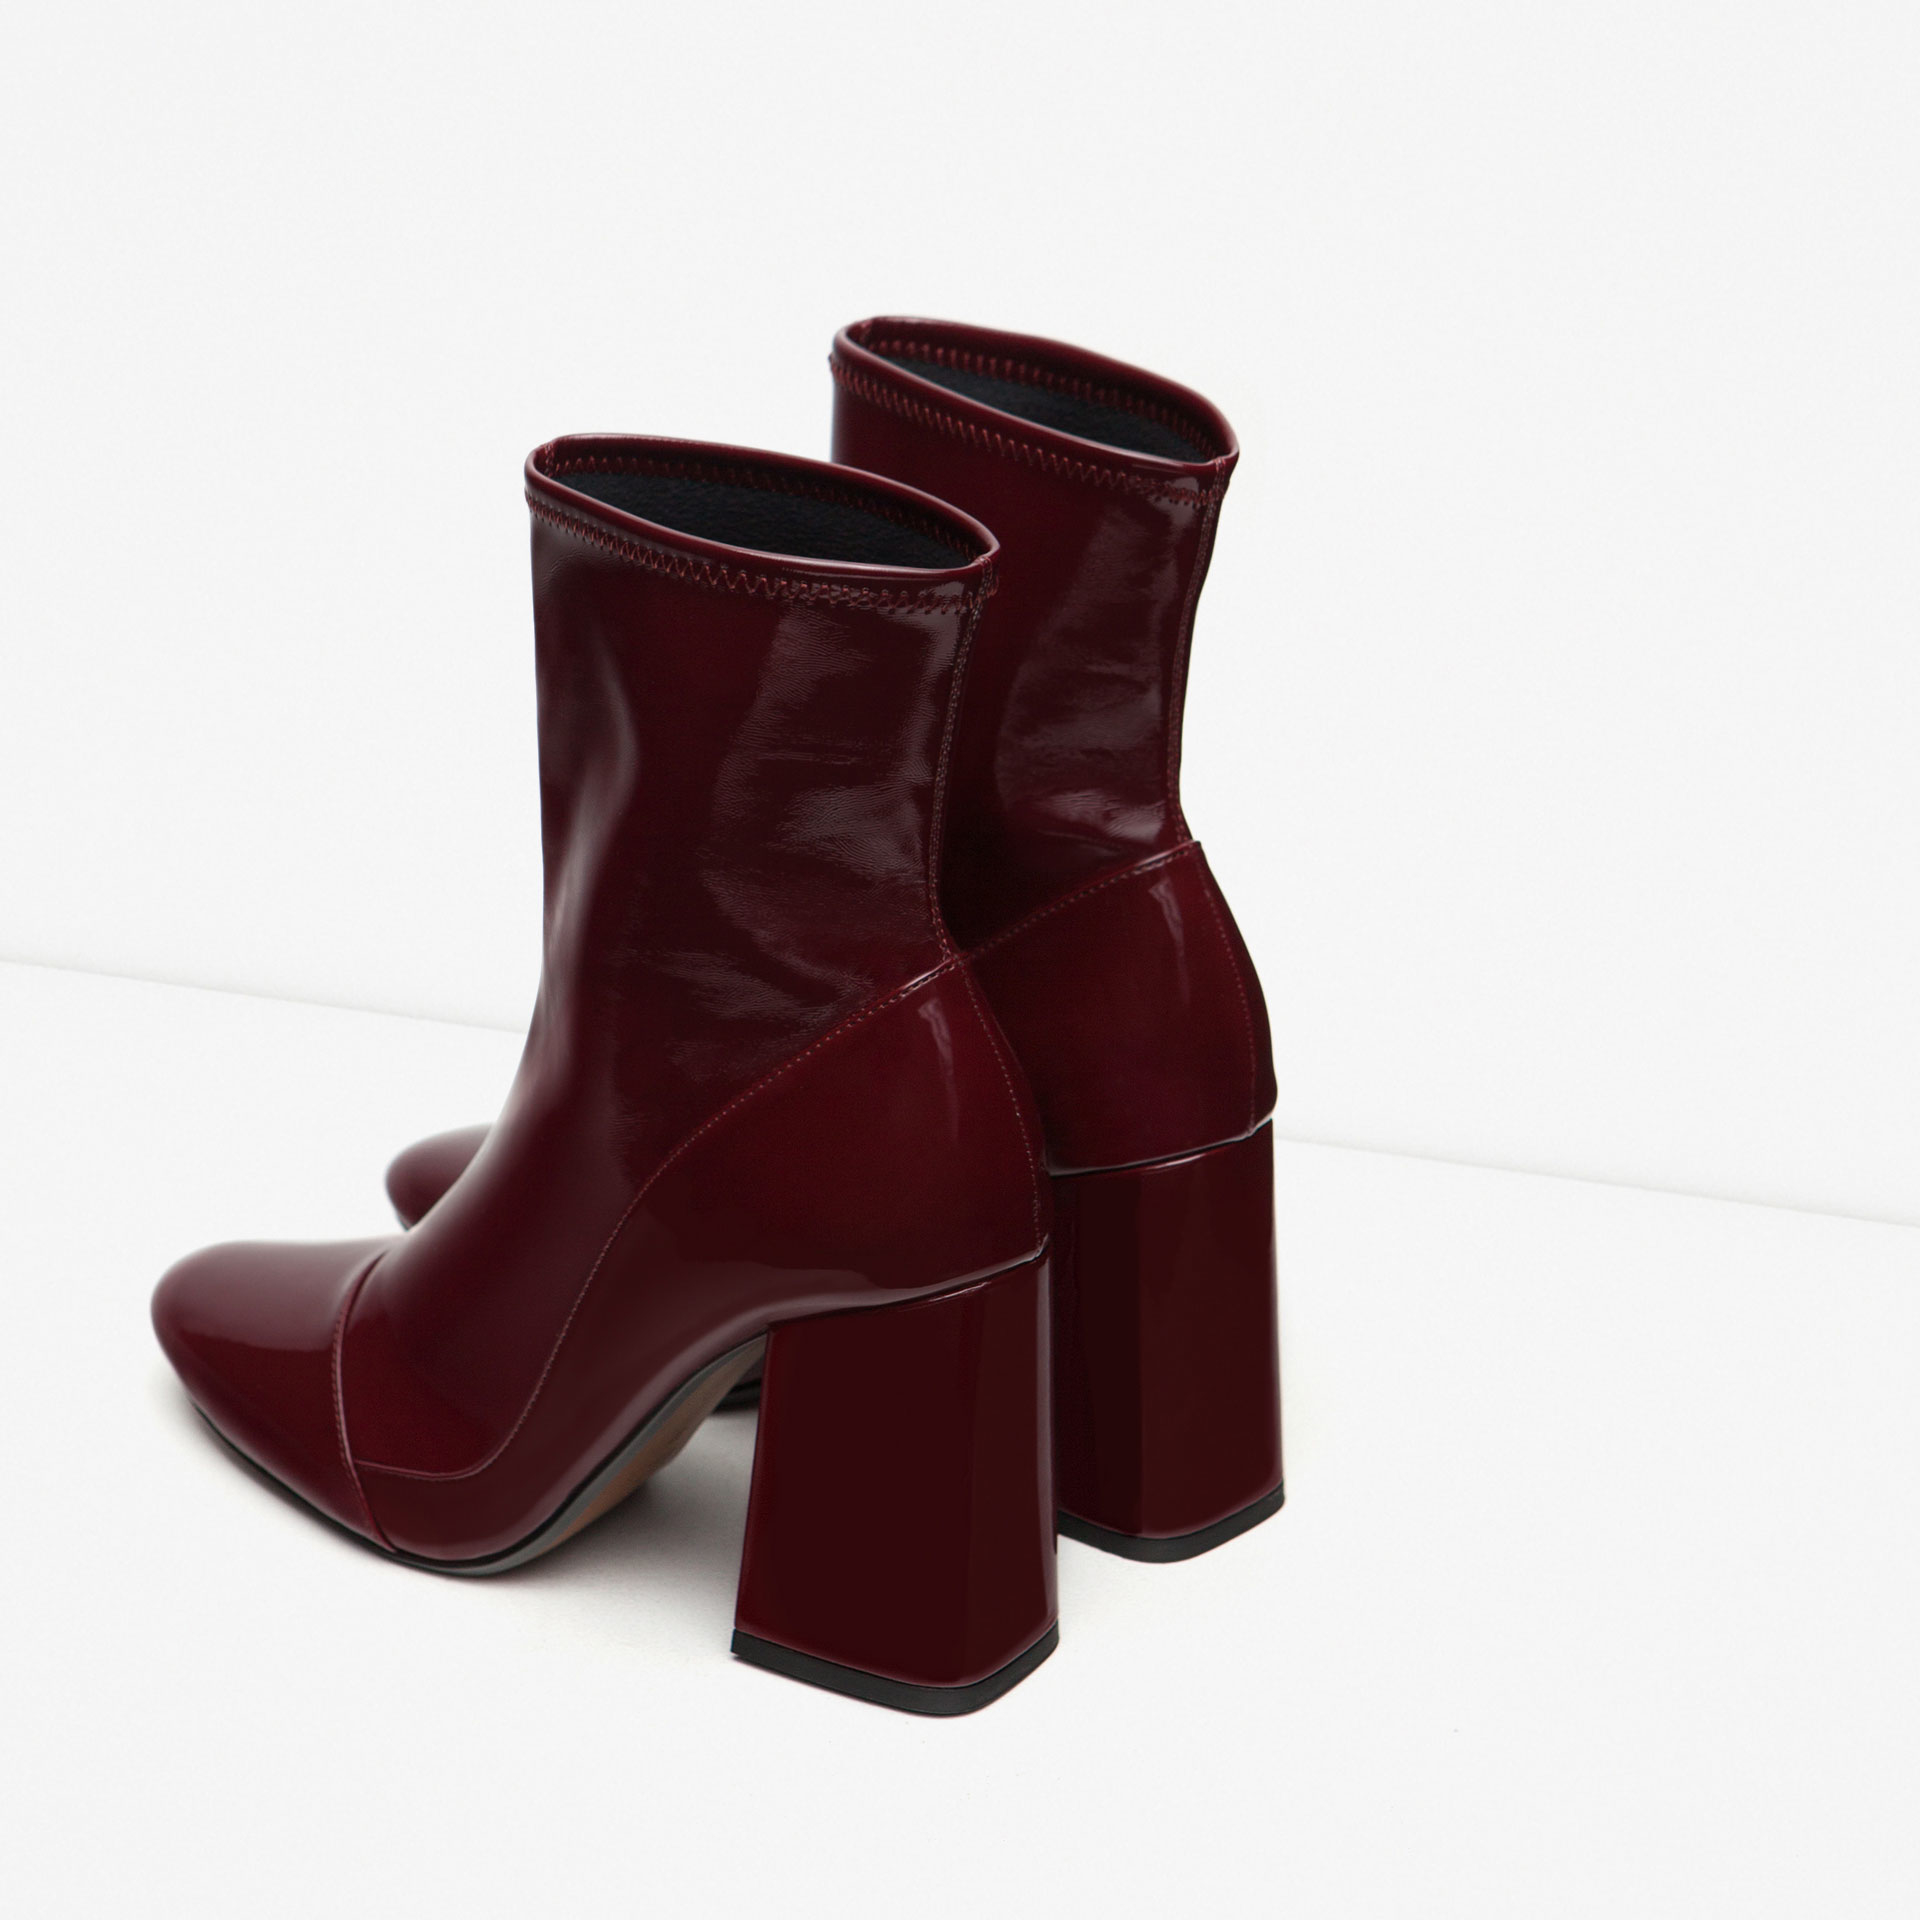 zara high heel sock style ankle boots in purple burgundy